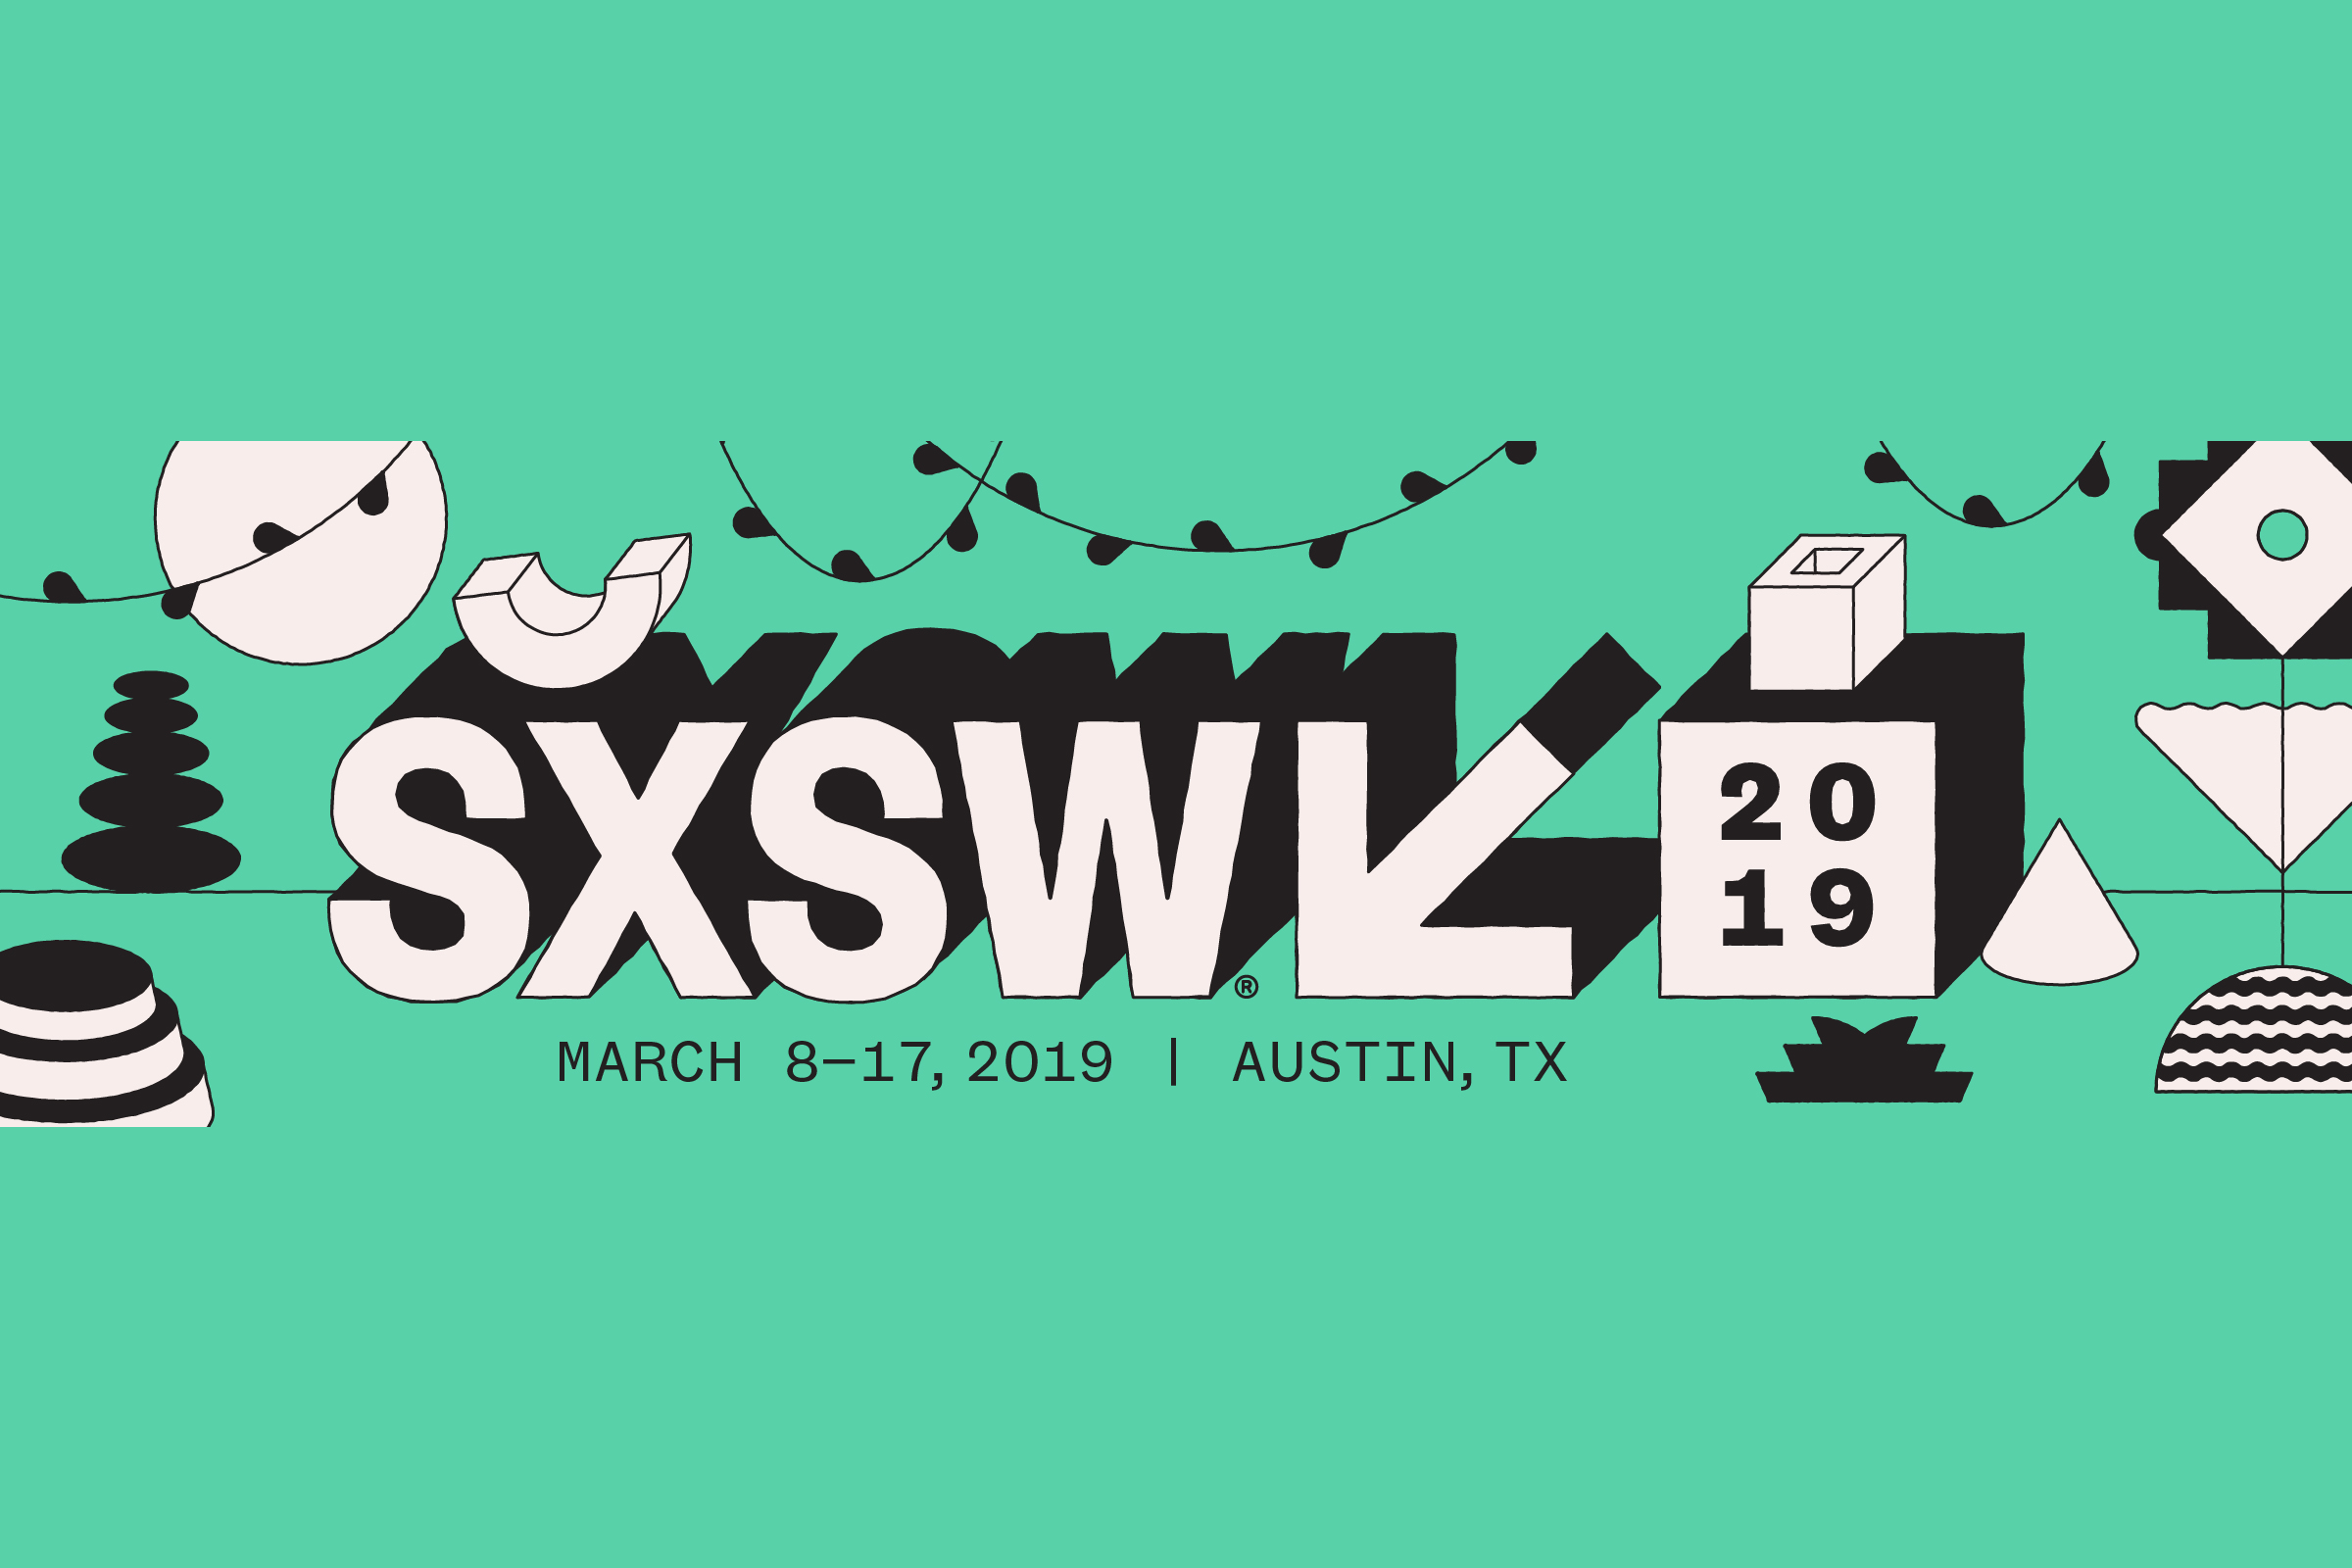 SXSW 2019 Accepting Submissions For Panels, Music Performers :